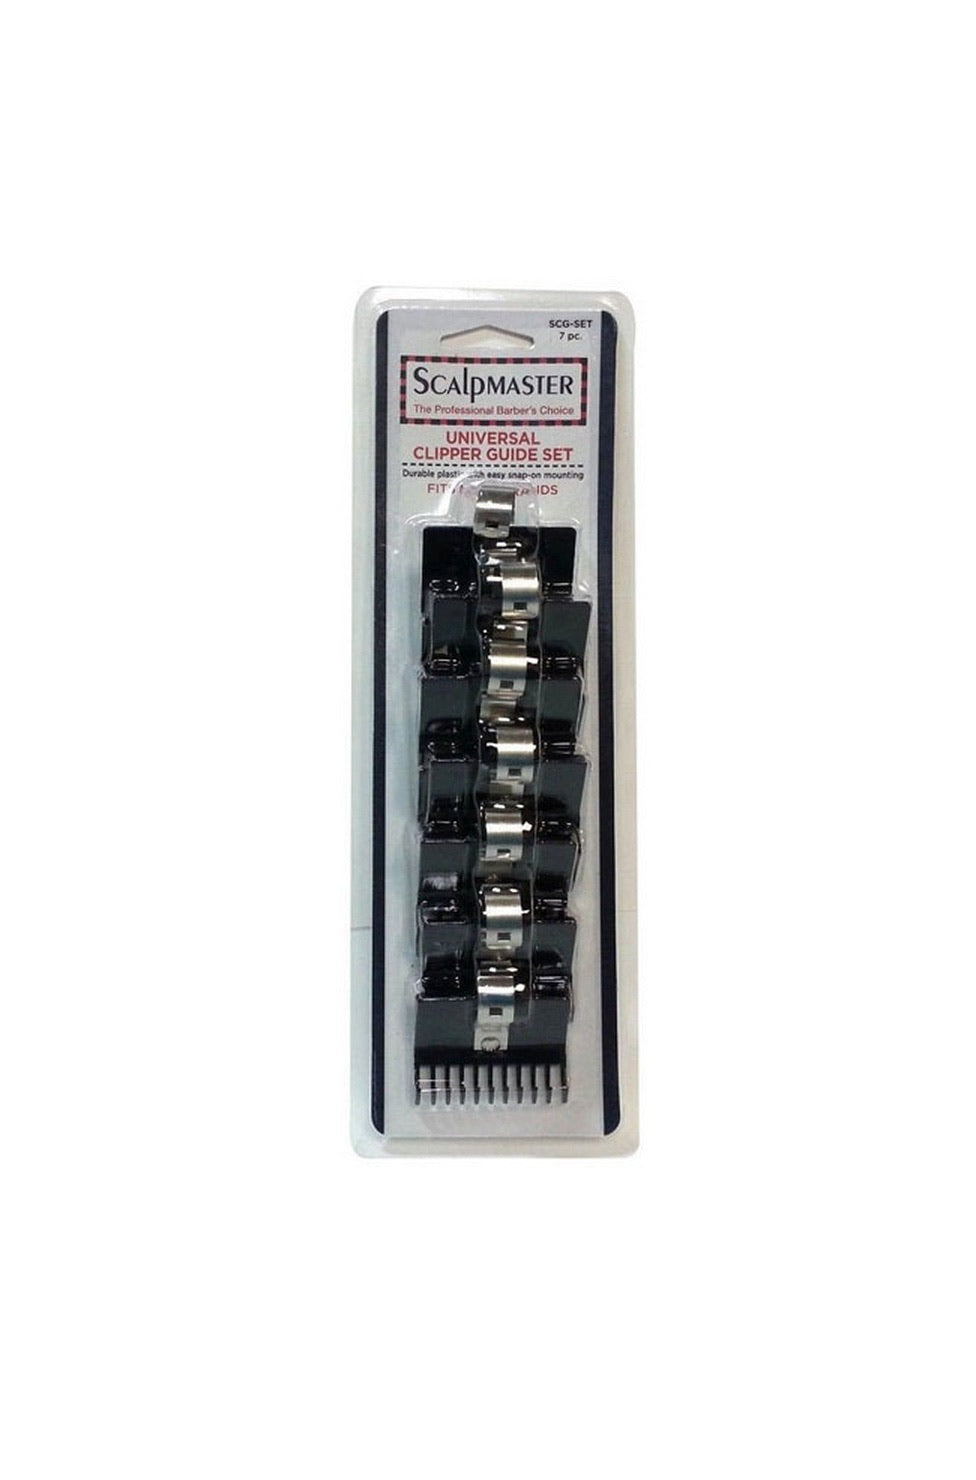 Scalpmaster Universal Clipper Guide Set